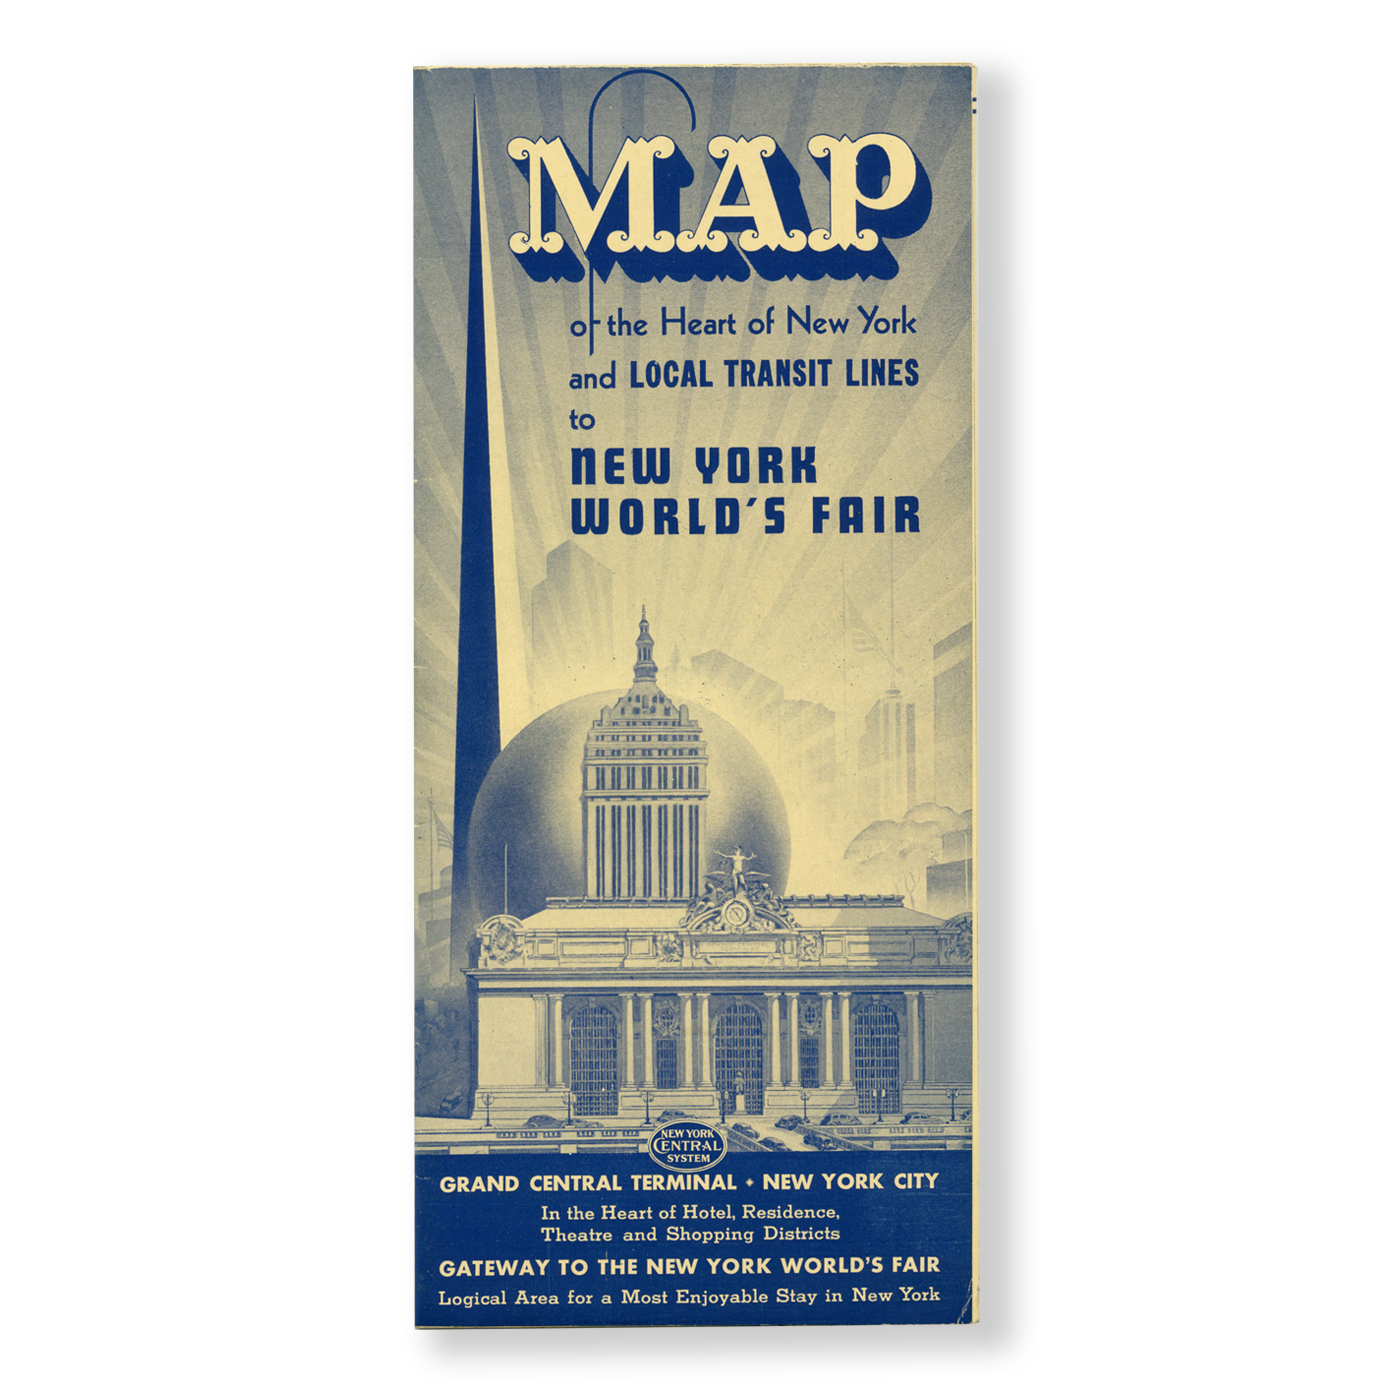 the_nycta_project_1939_transit_map_for_nyc_worlds_fair_cover.jpg